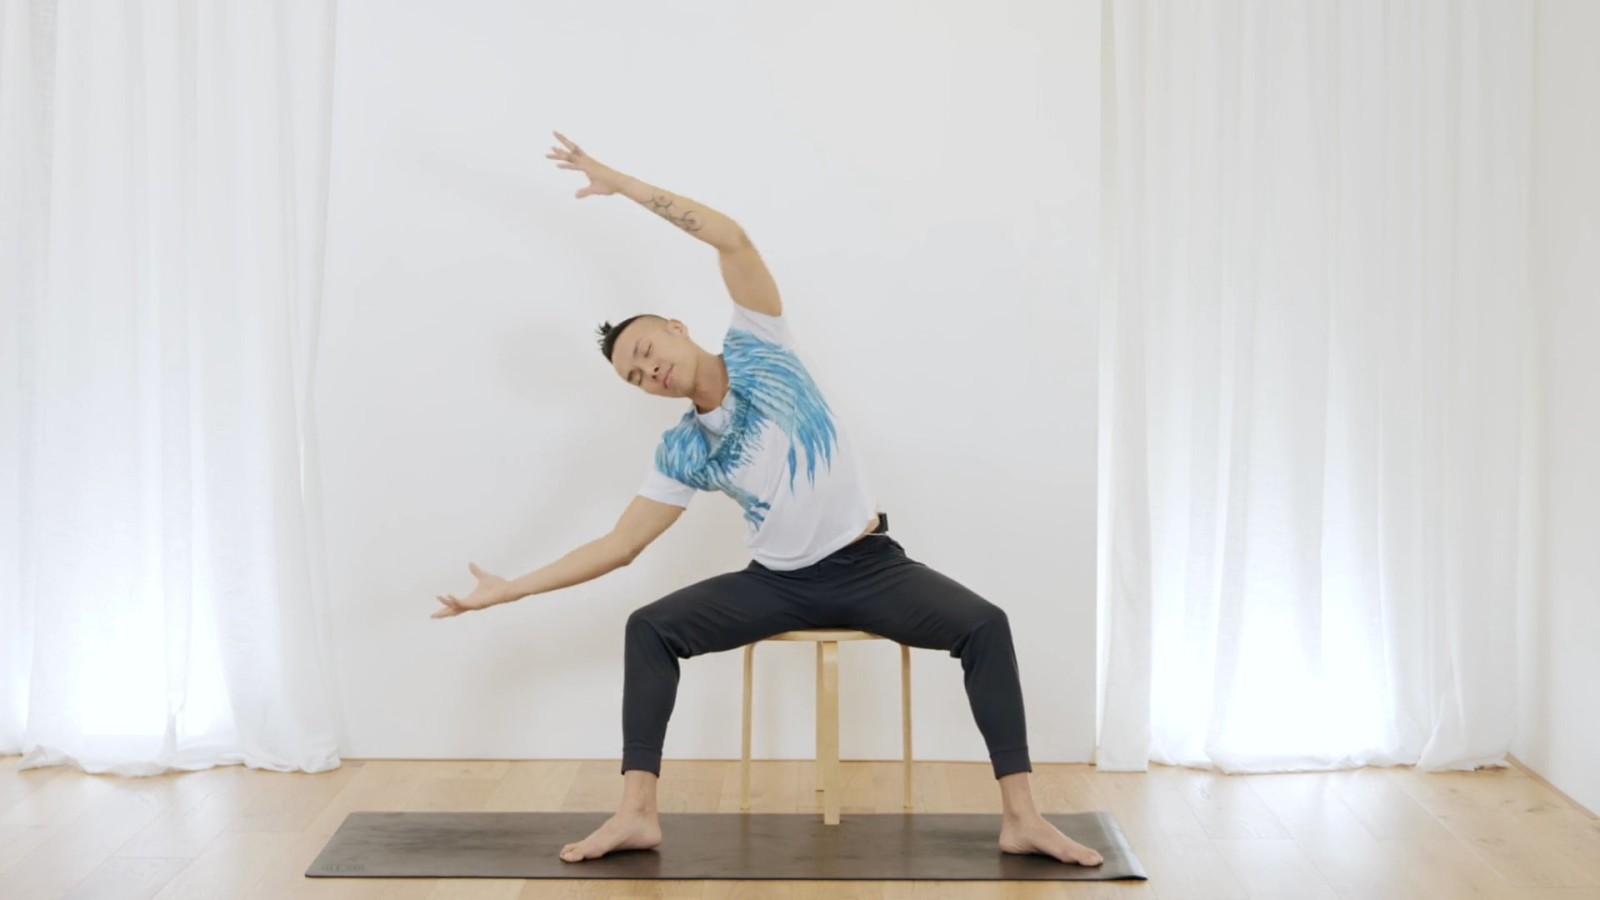 Spinal Waves for Energetic Activation with Johnson Chong